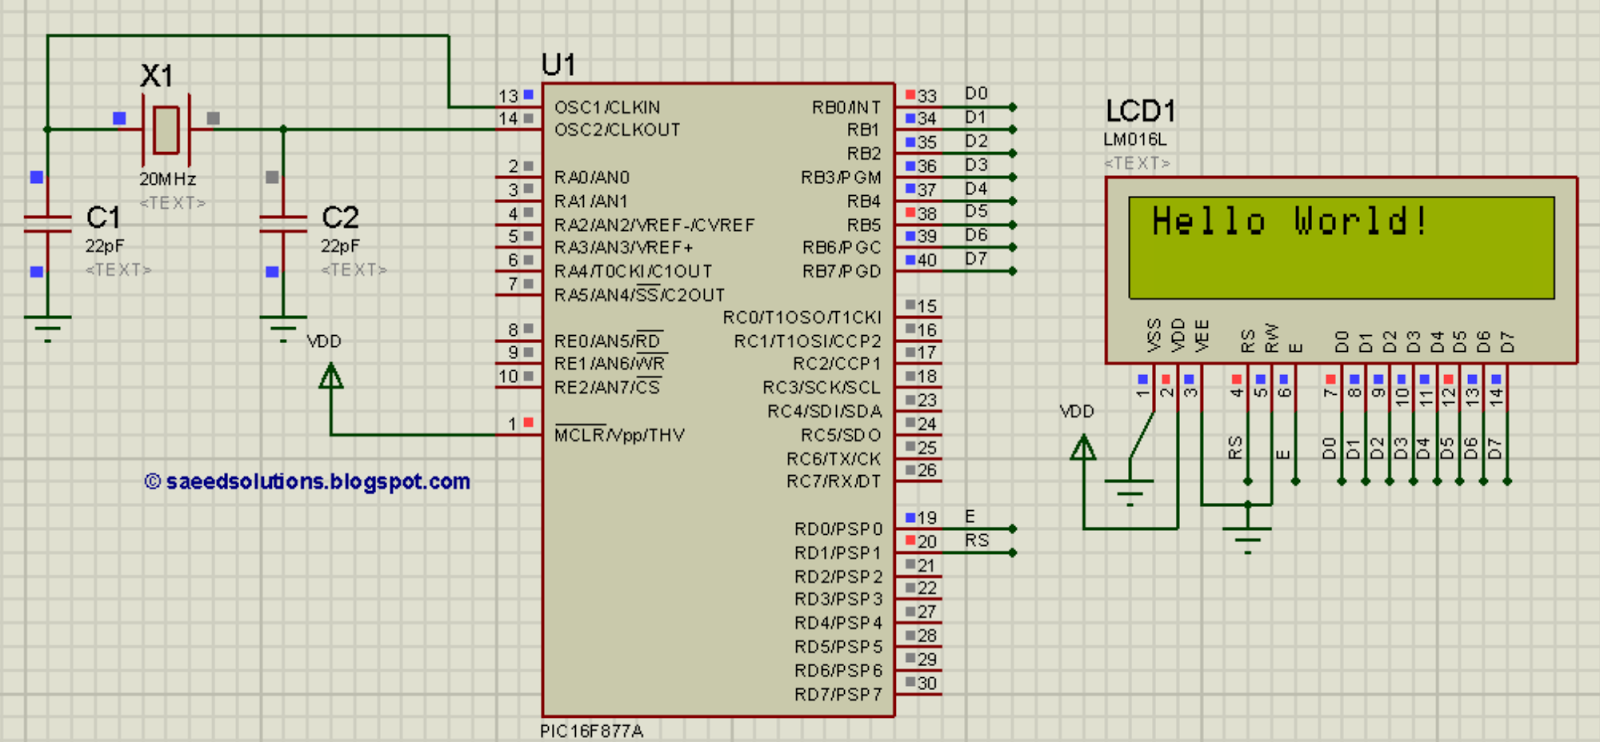 PIC16F877A LCD interfacing code (In 8bit mode) + Proteus